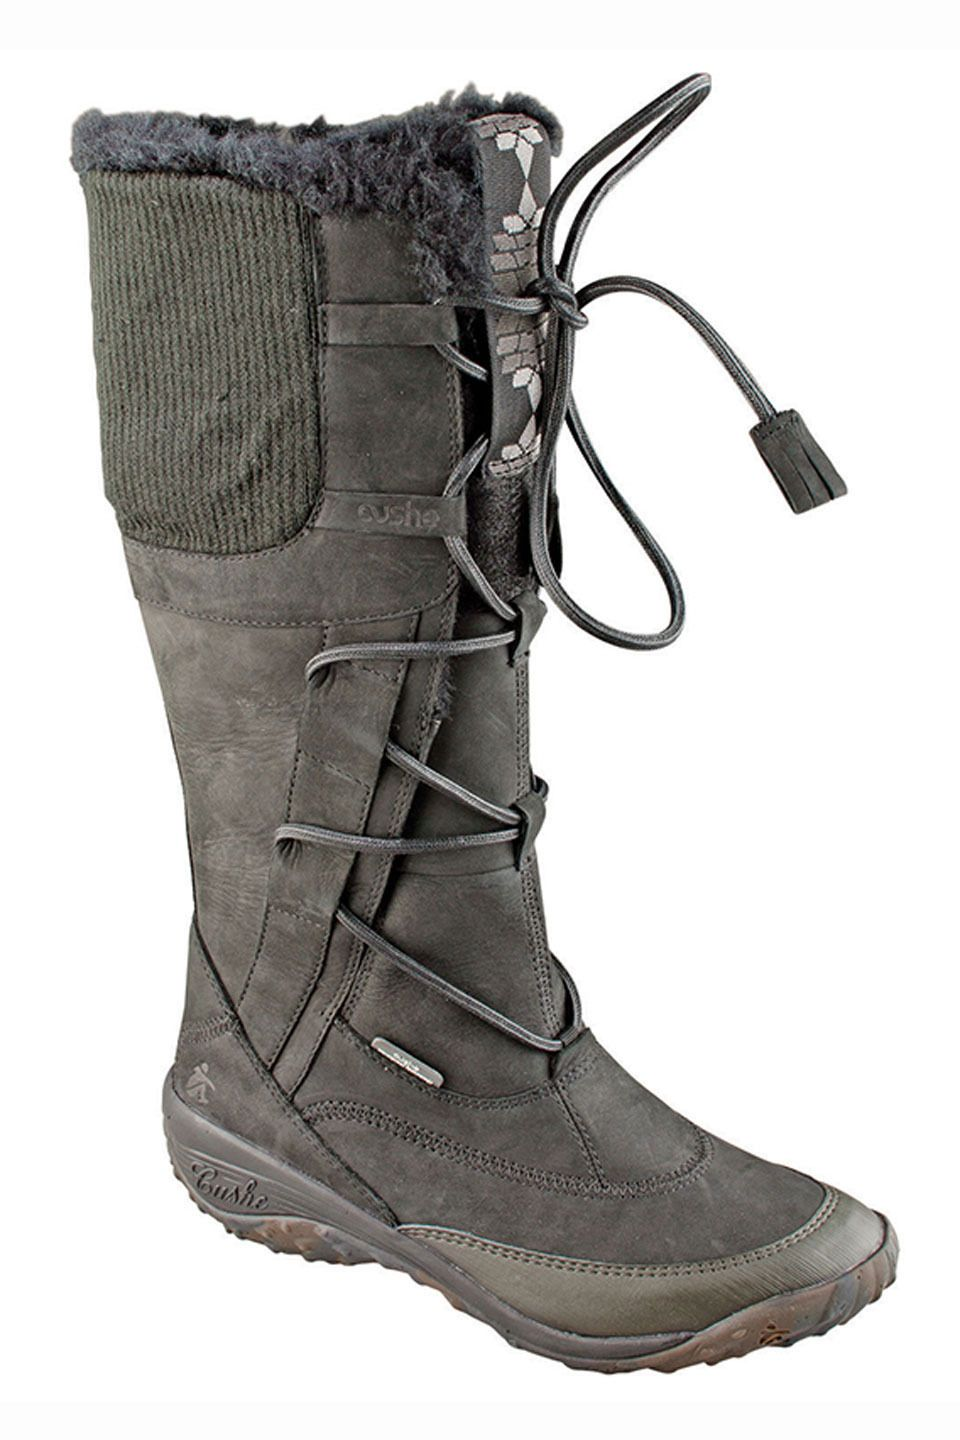 Cushe Allpine Fern Boots in Black Leather - Beyond the Rack